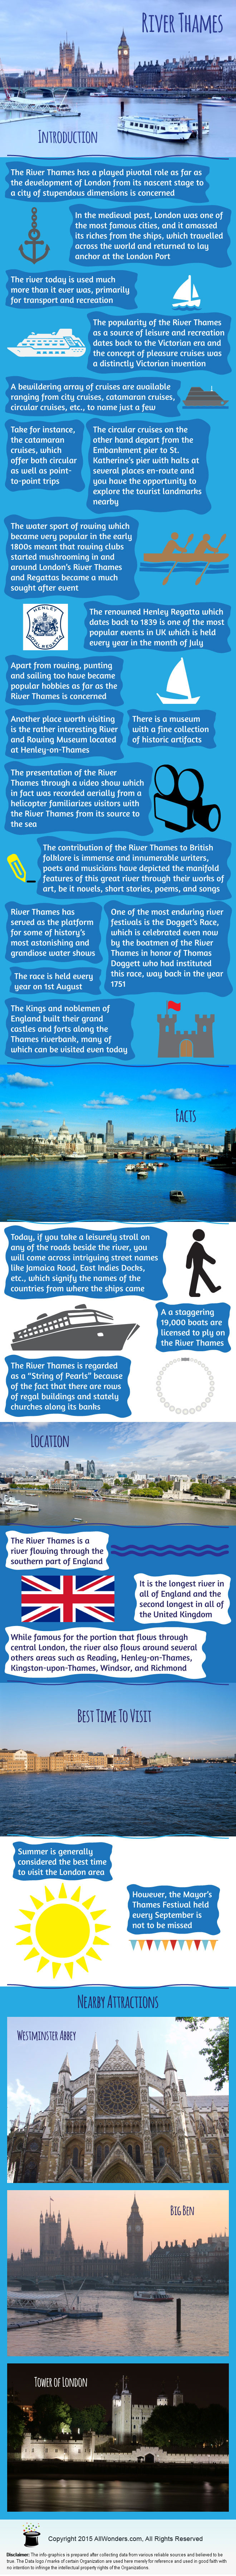 Thames River - Facts & Infographic